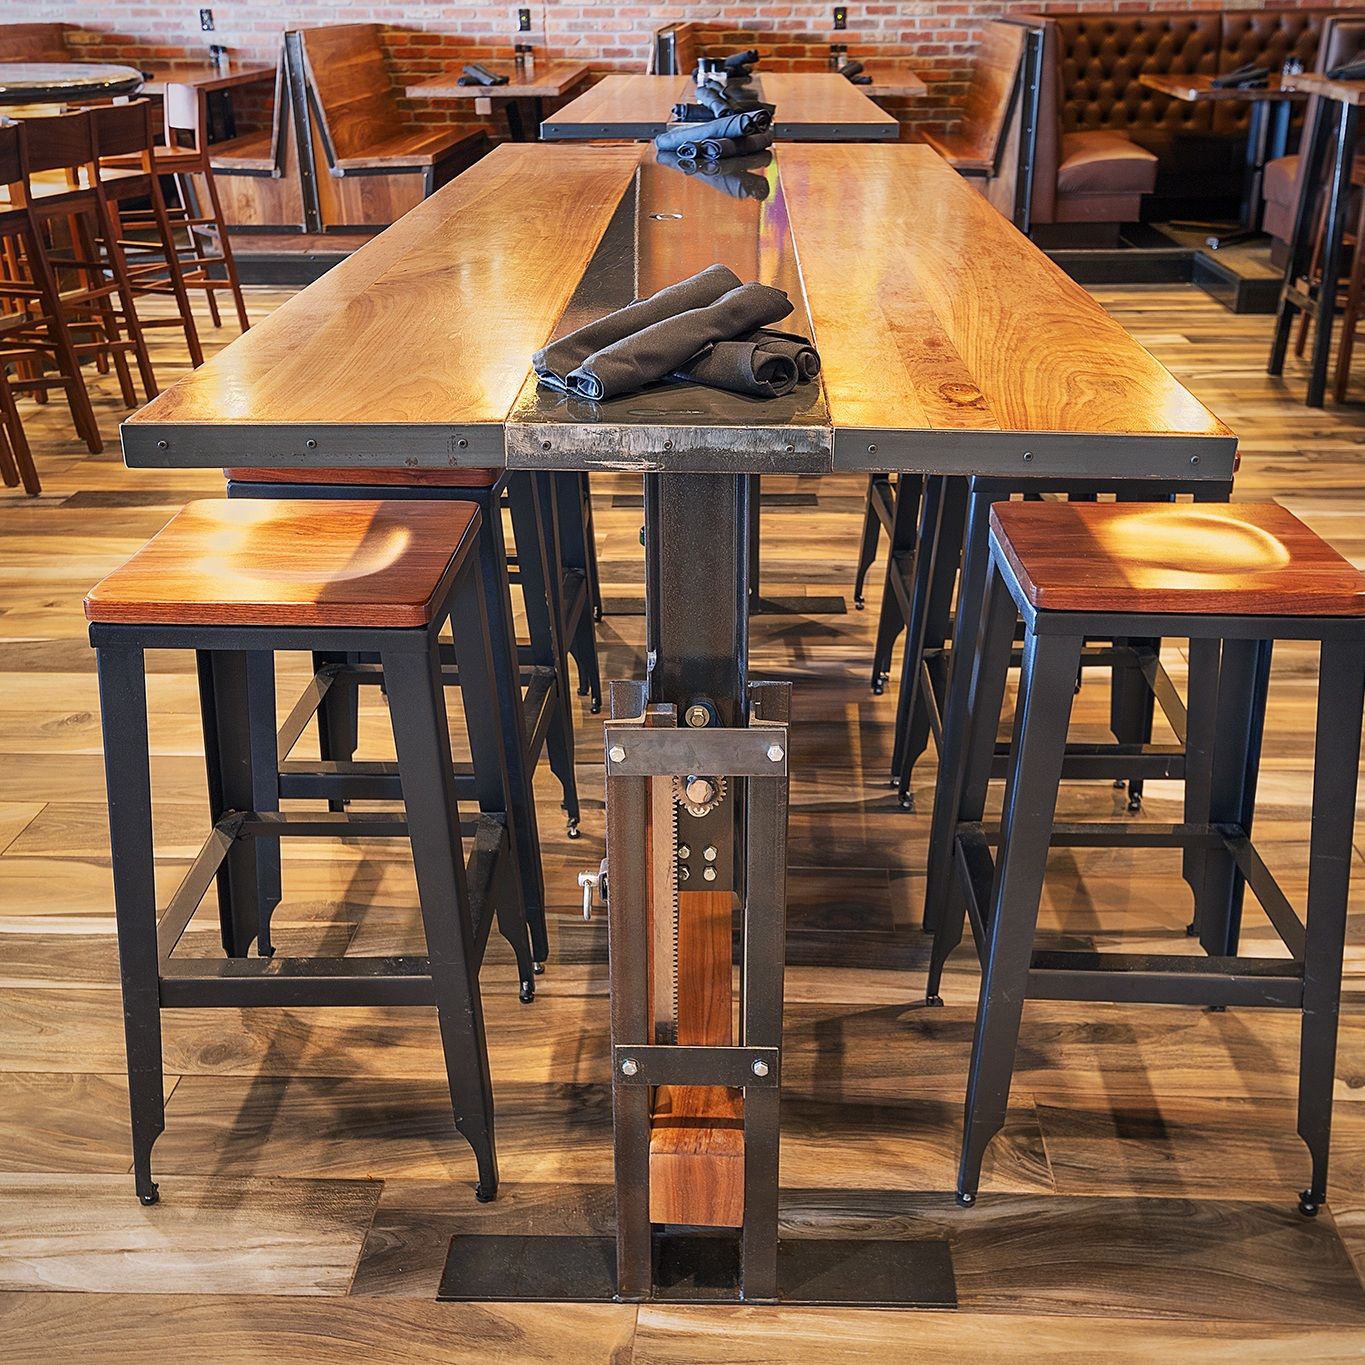 architect-led fabrication - Founded in the Quad Cities, we offer custom steel furniture, trim, handrails, casework, and more to restaurant and office owners, and with a retail store opening this fall, soon unique designs will be available right in your home.